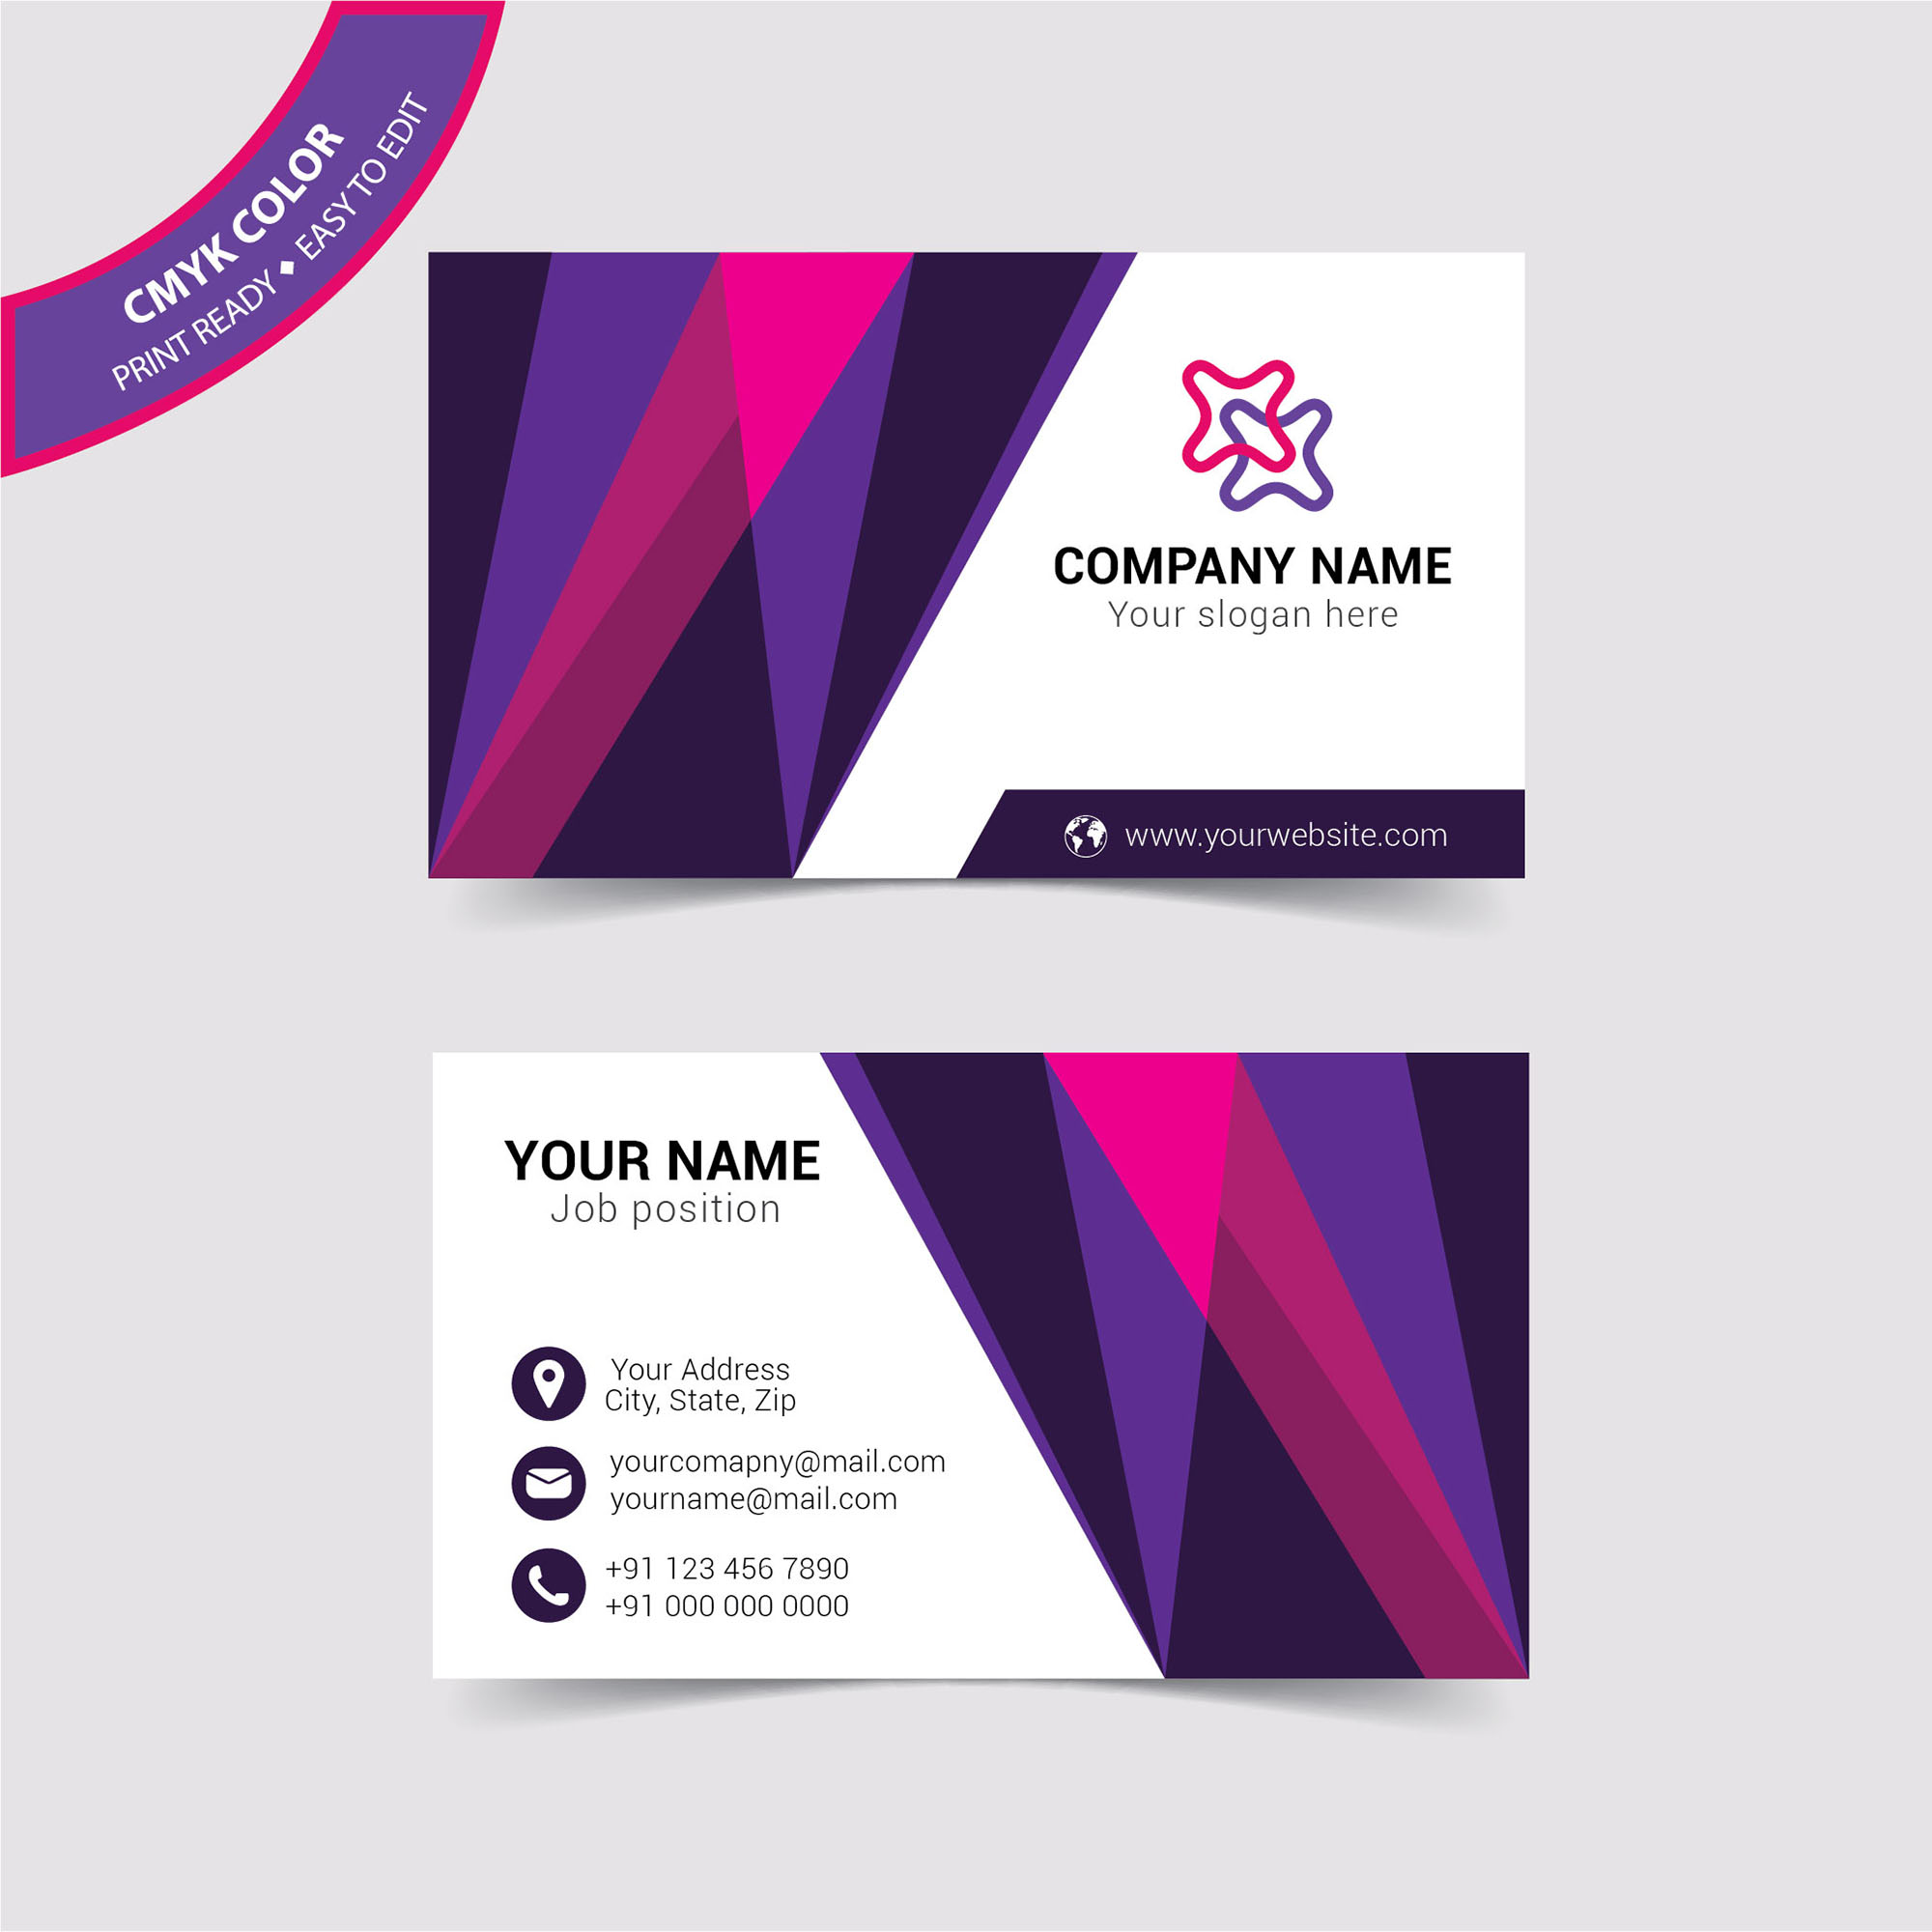 Clean Corporate Business Card Free Download - Wisxi.com